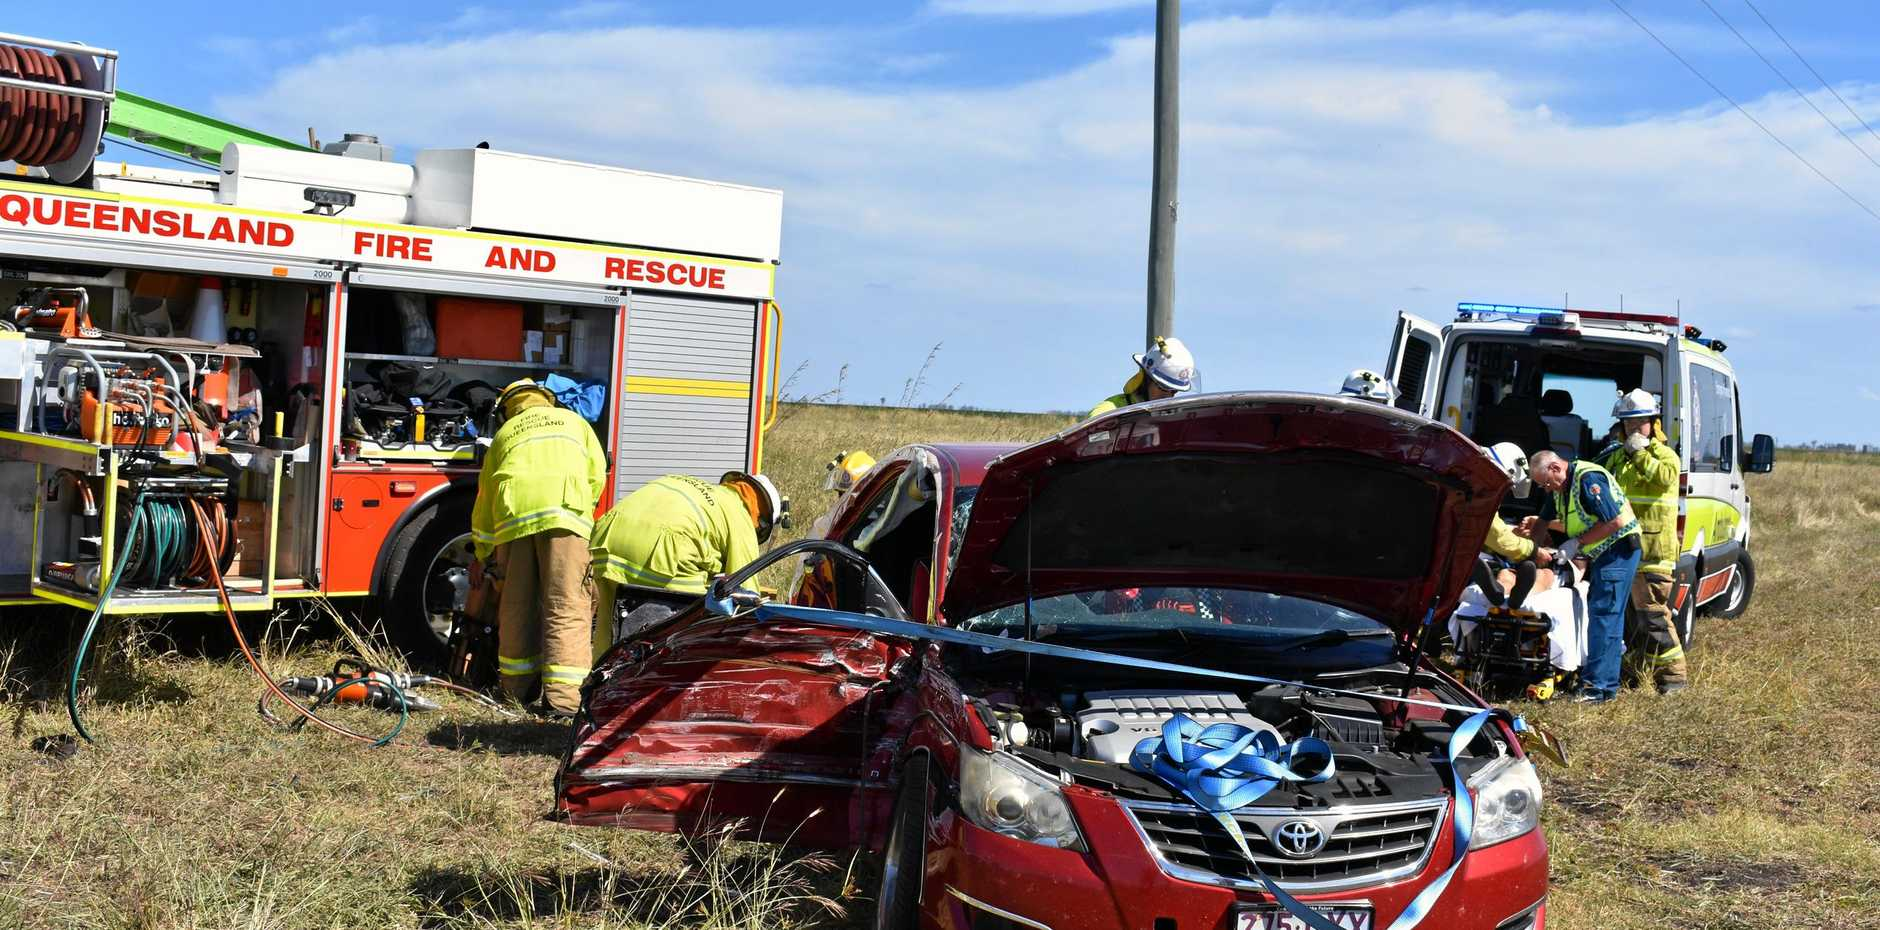 PIRRINUAN ACCIDENT: One man has been transferred to the Dalby Hospital following a two-vehicle collision at 2.20pm.